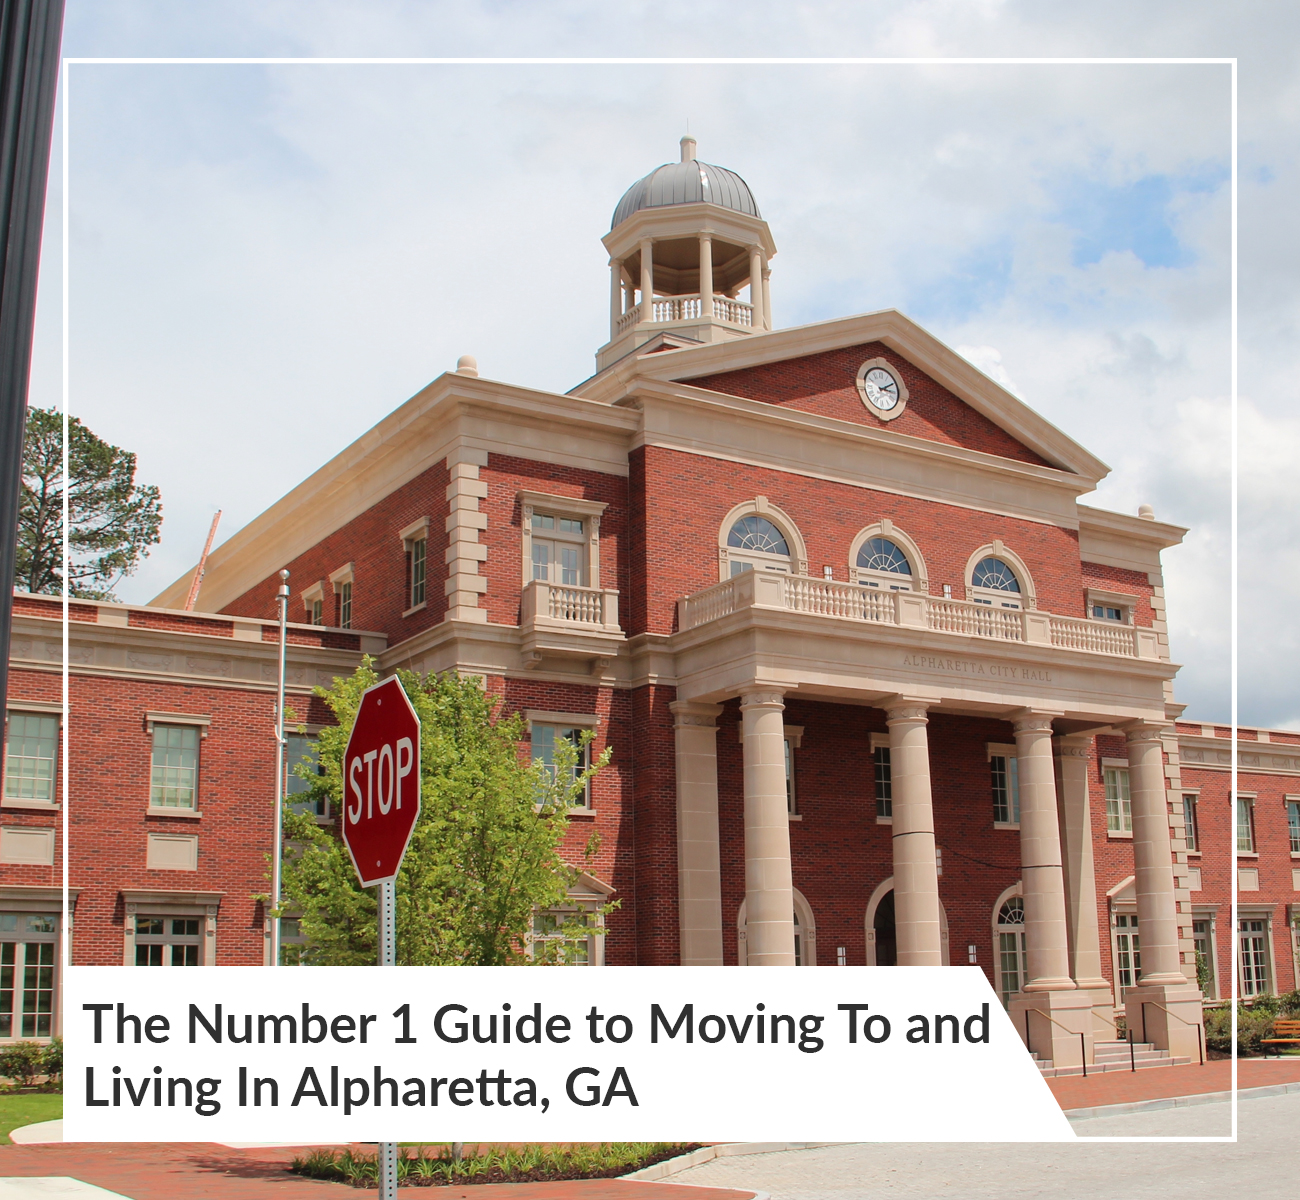 The Number 1 Guide to Moving To and Living In Alpharetta, GA